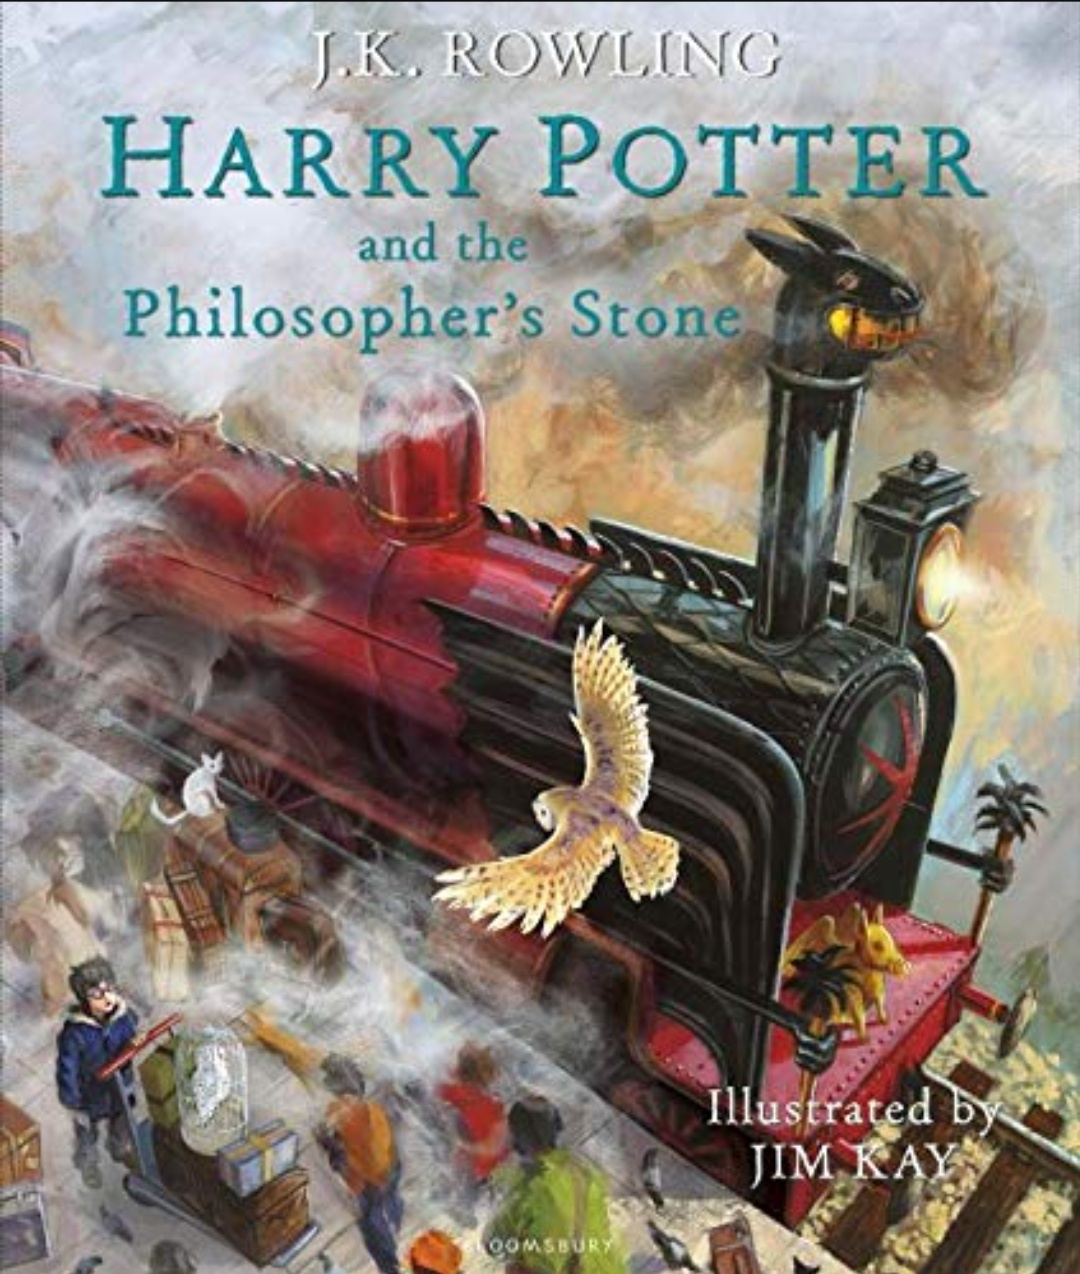 Harry Potter and the Philosopher's Stone (Bloomsbury)